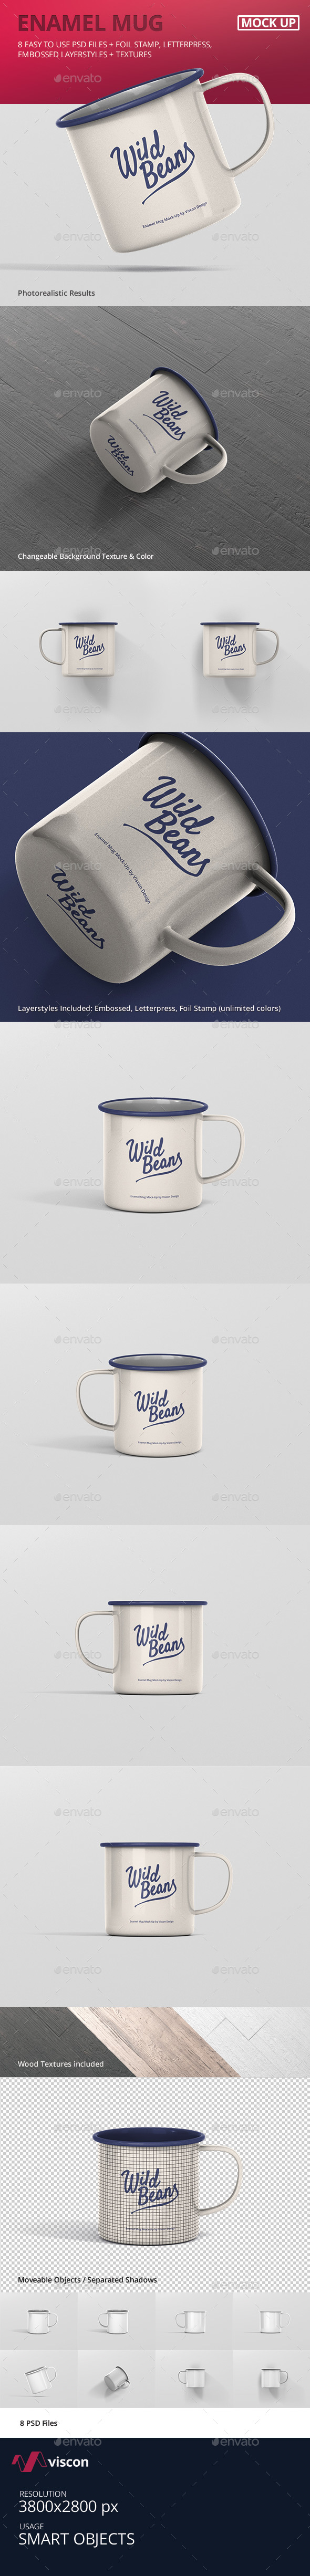 Enamel Mug Mockup - Food and Drink Packaging